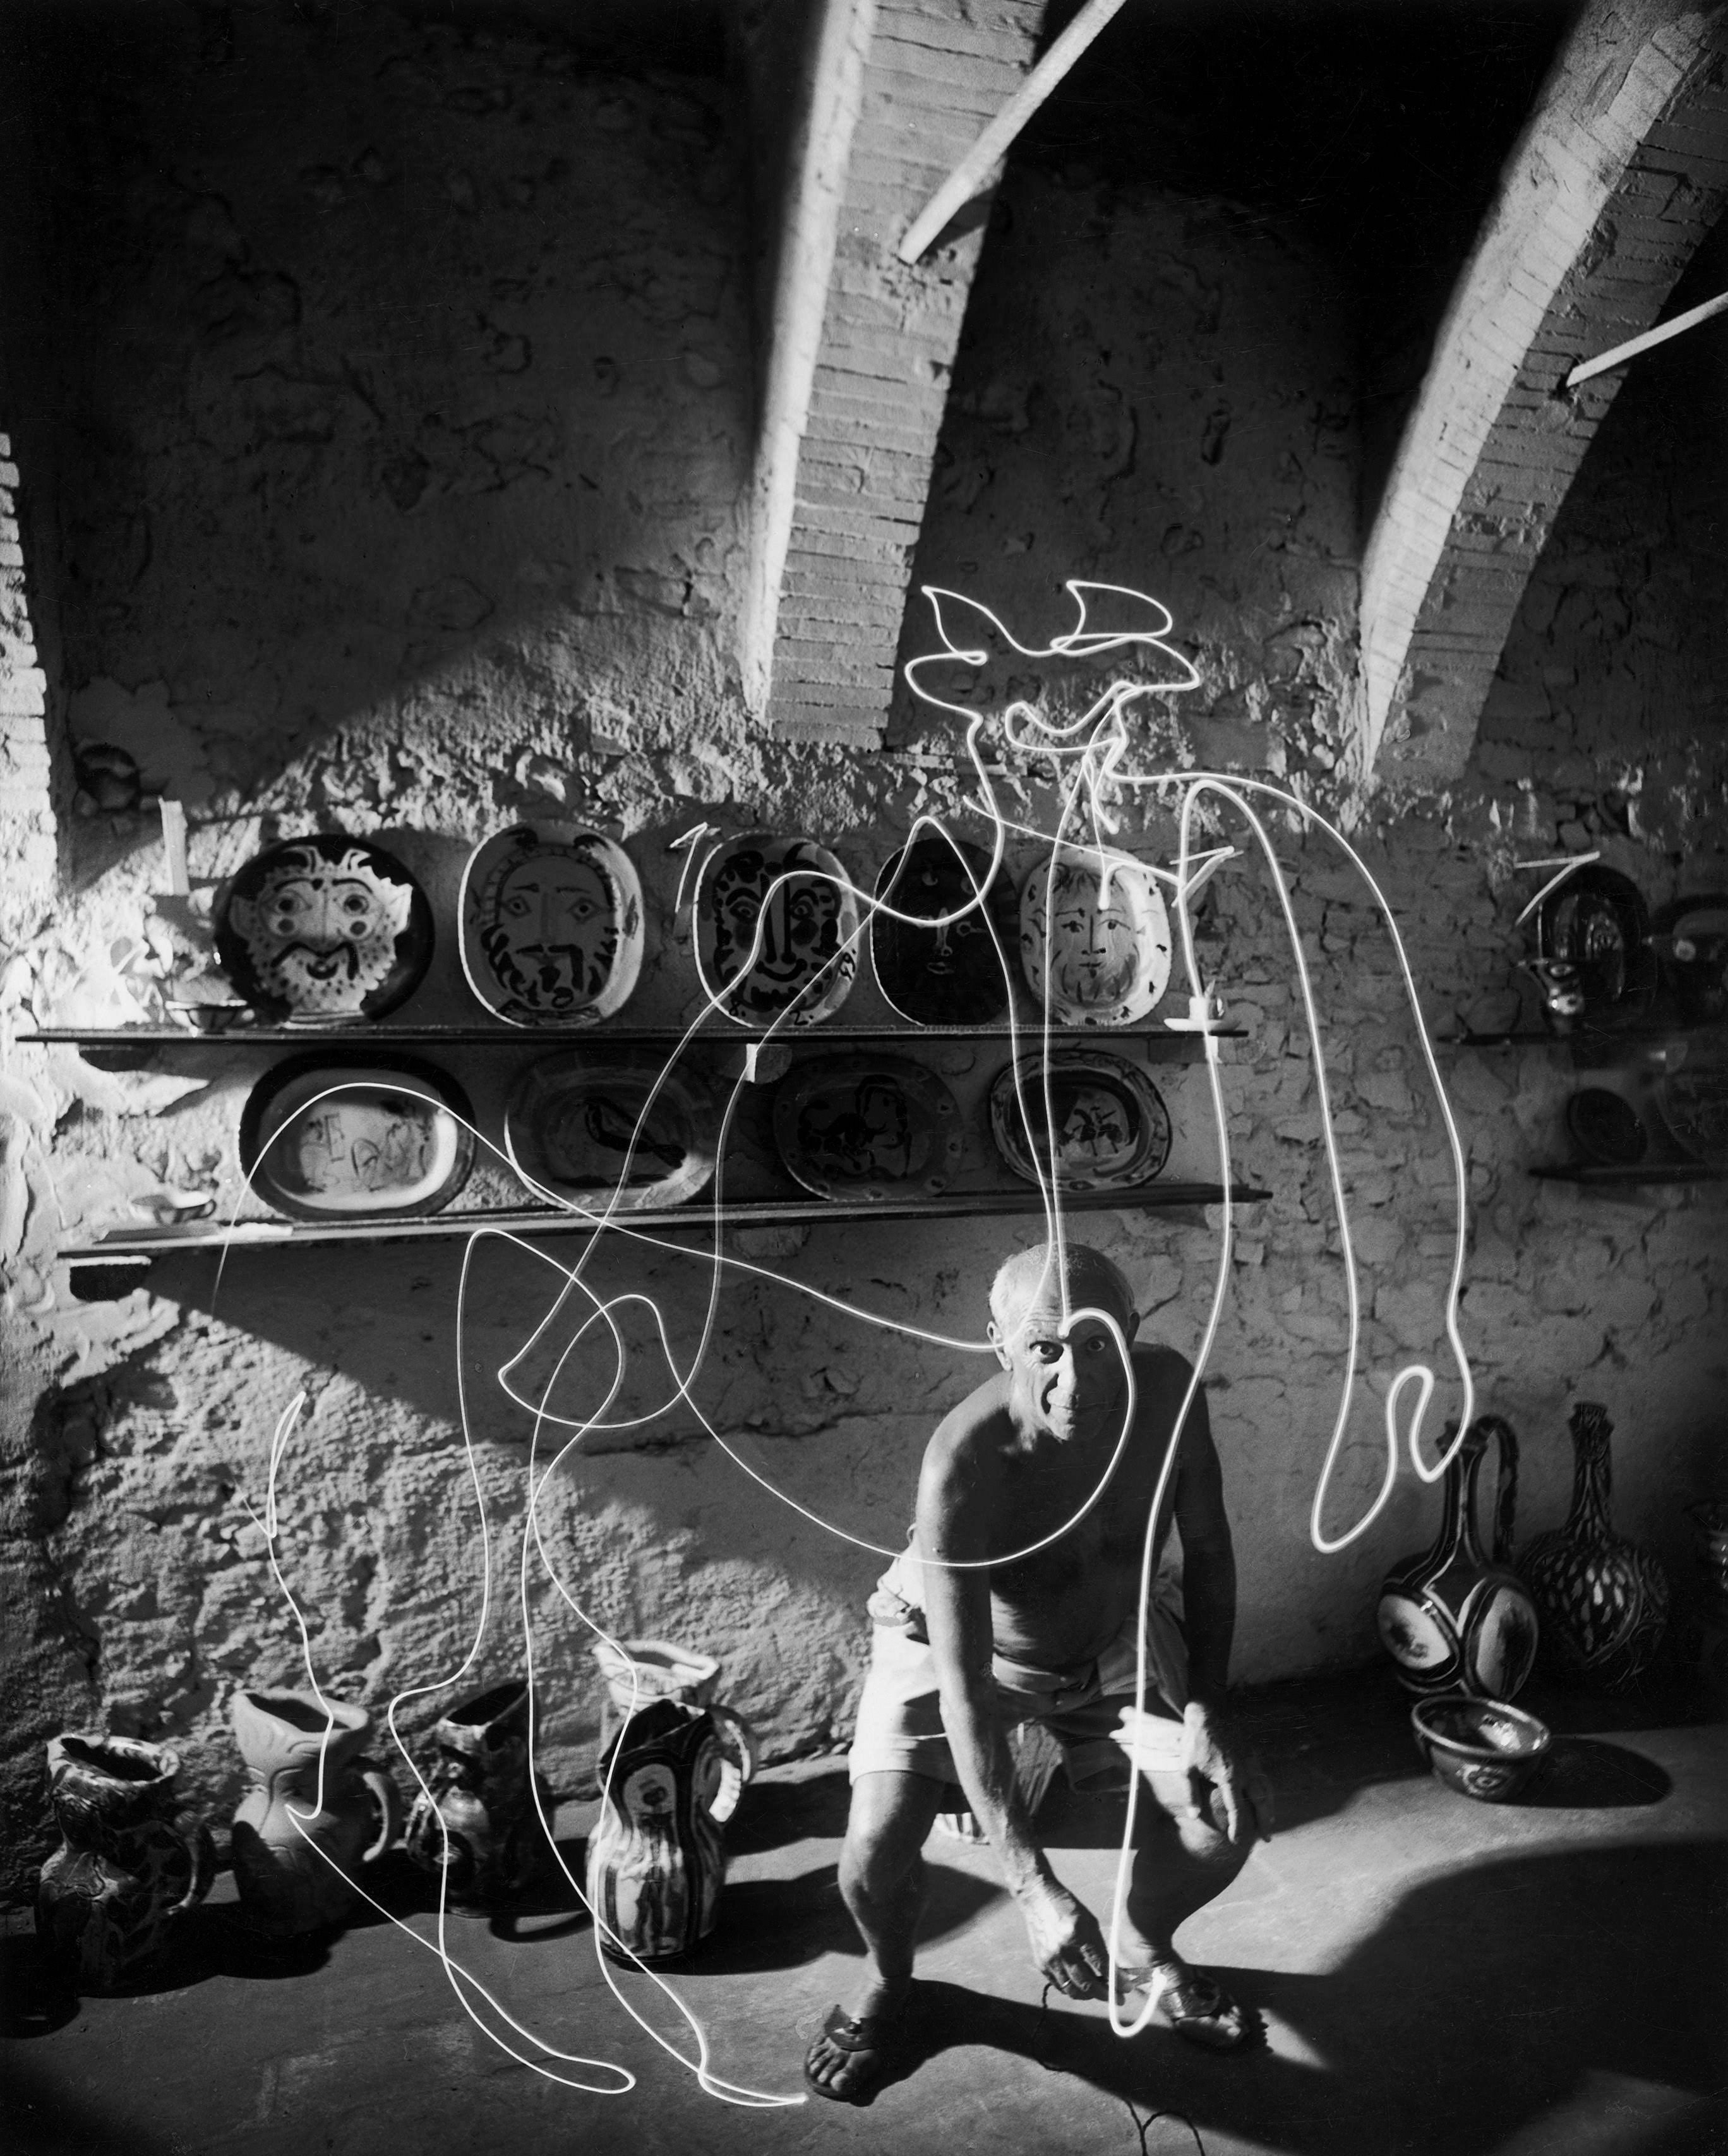 artist pablo picasso painting